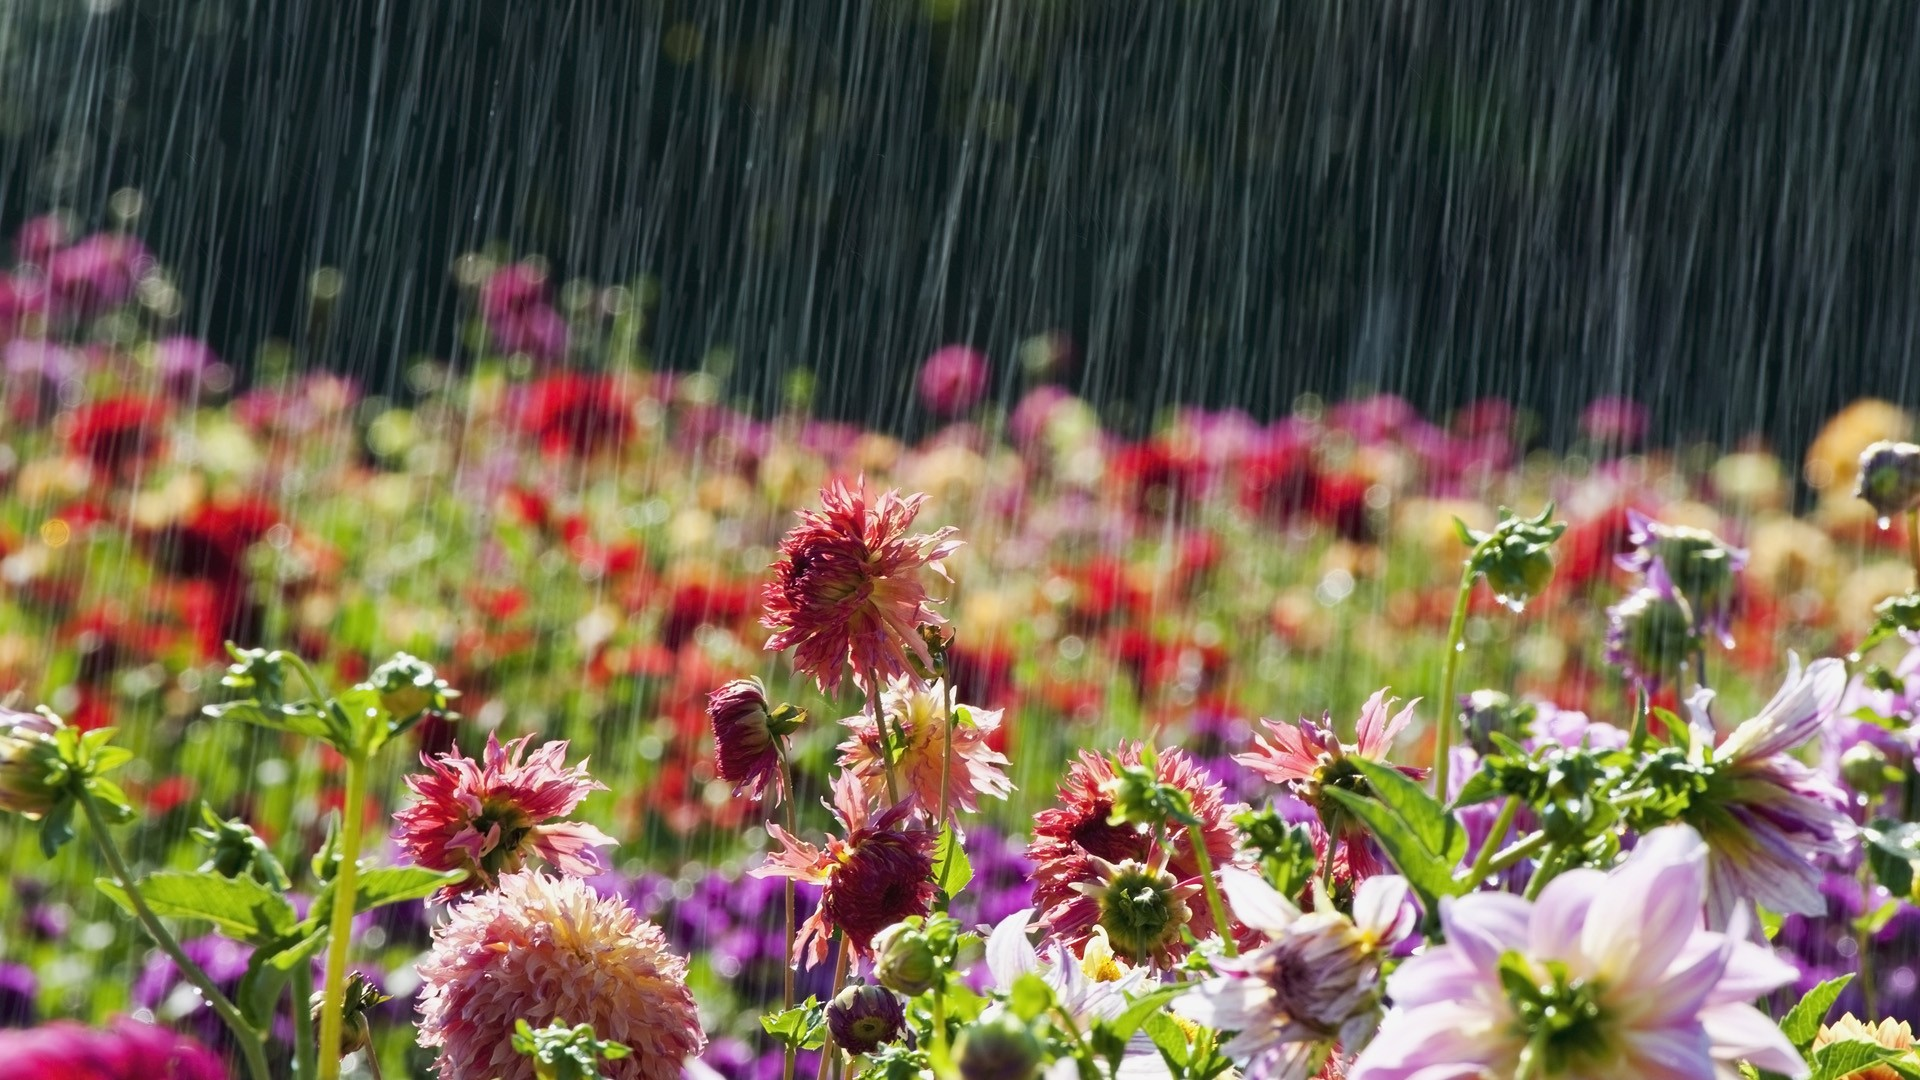 beautiful-flowers-in-rain-latest-wallpaper - hd wallpaper